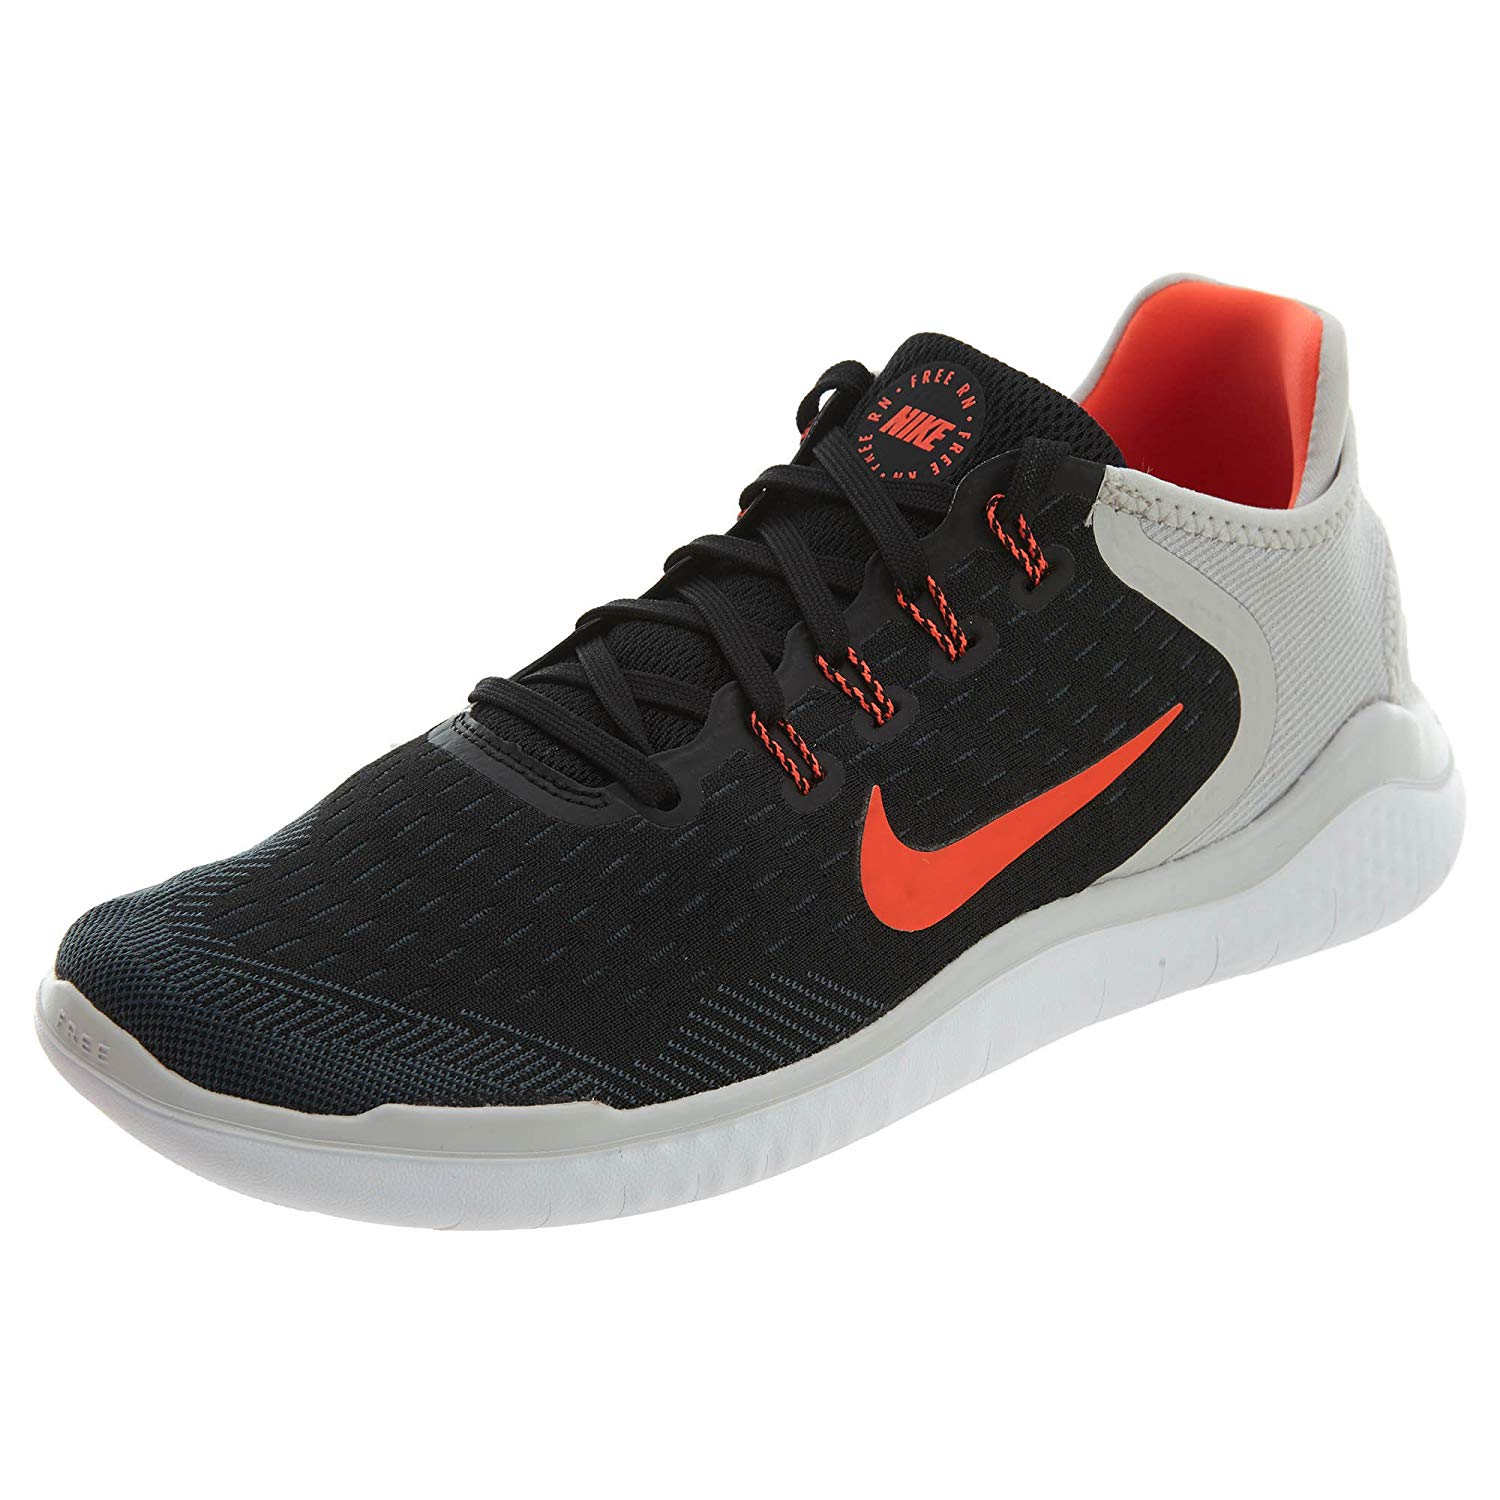 91aef9b332aa Nike Men s Free RN Flyknit 2018 Running Shoes-Black Total Crimson